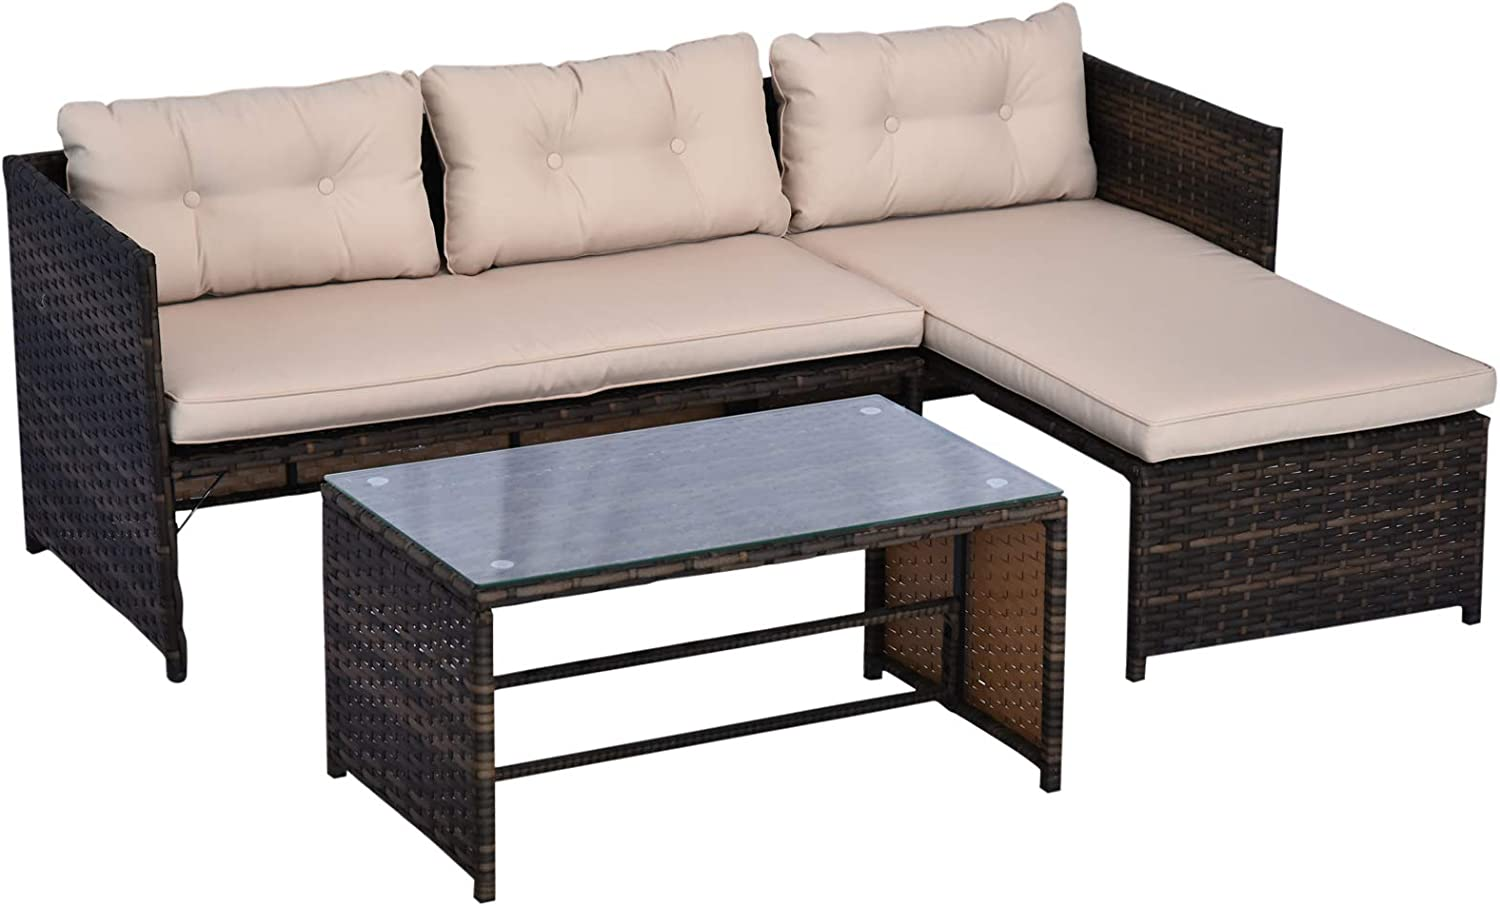 Outsunny 12pcs Outdoor Rattan Wicker Sofa and Chaise Lounge Set with Cushion  Garden Patio Furniture Brown and Beige